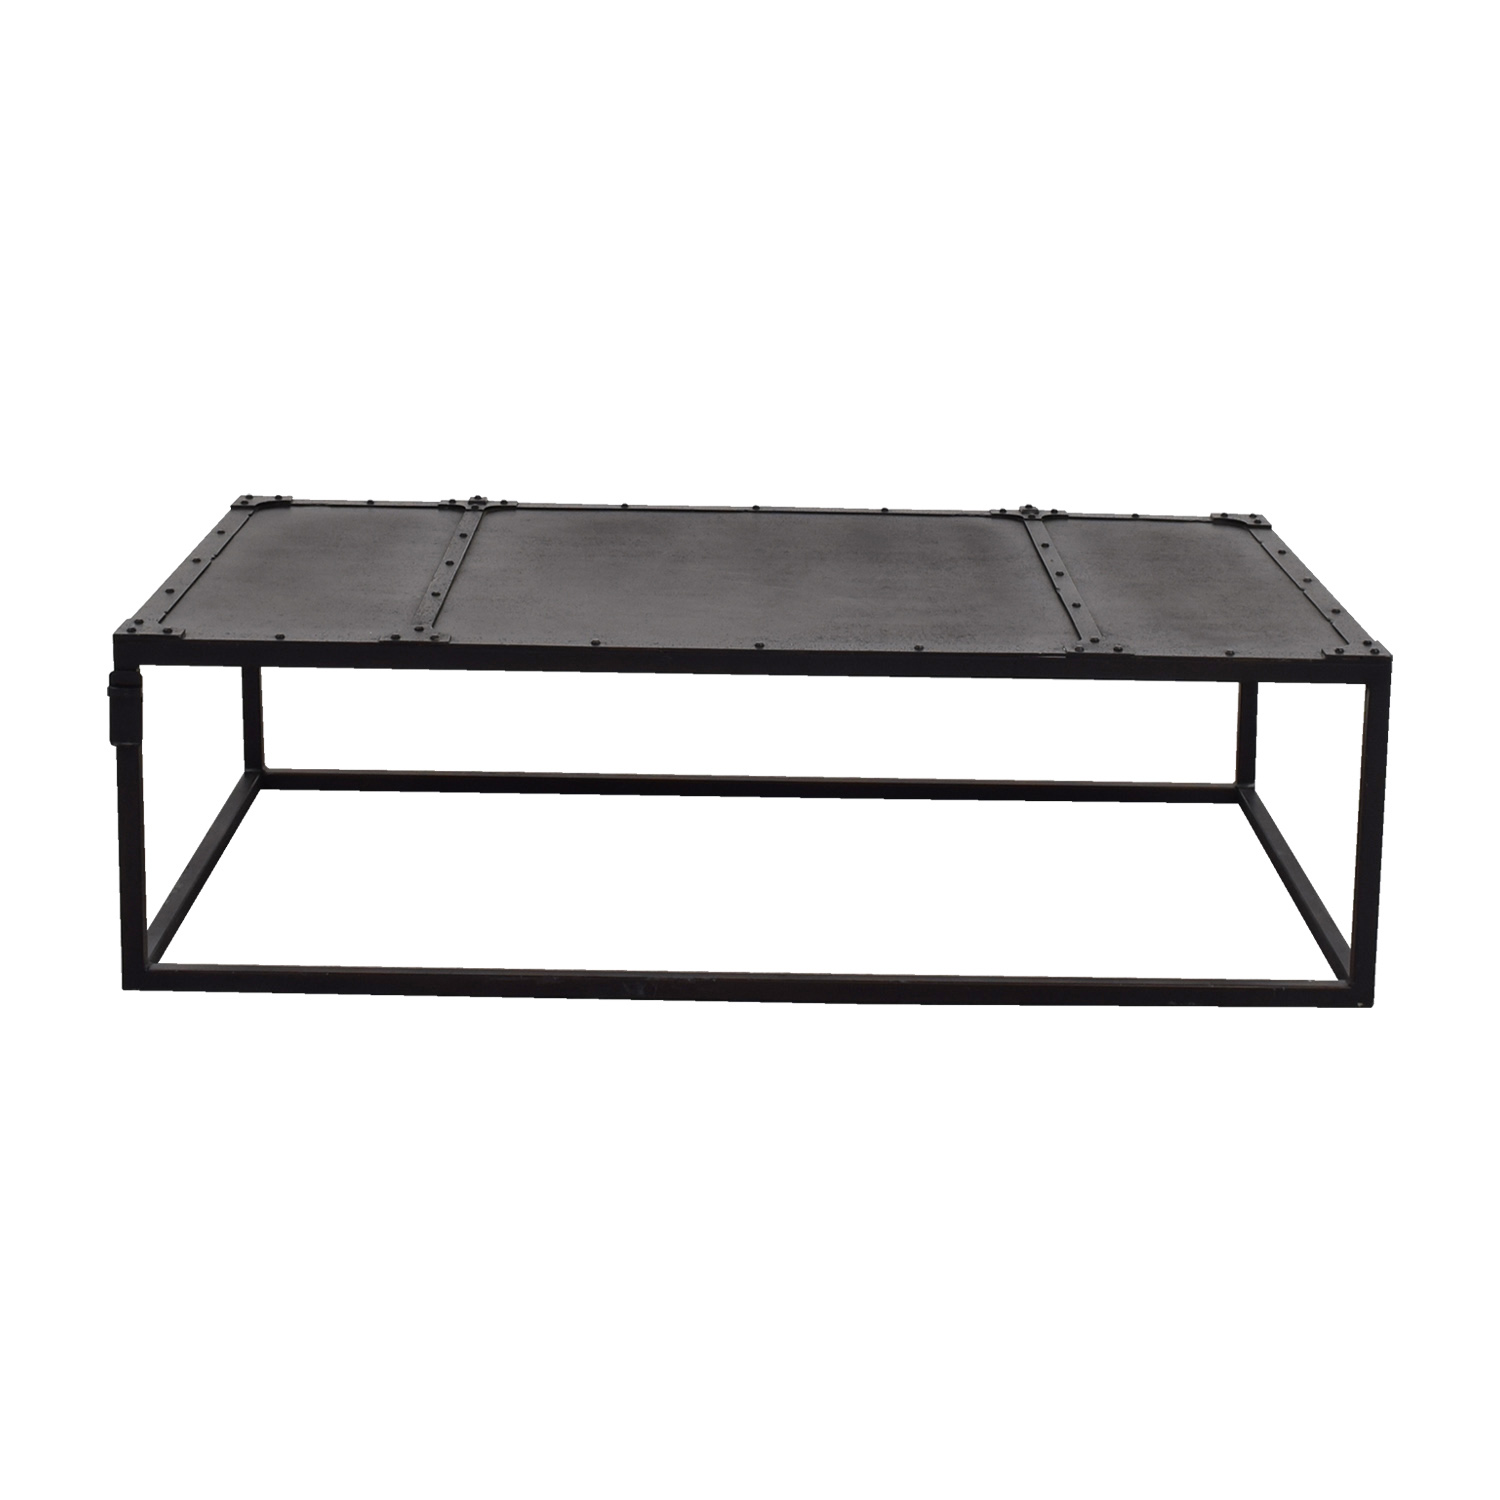 Fullsize Of Restoration Hardware Coffee Table